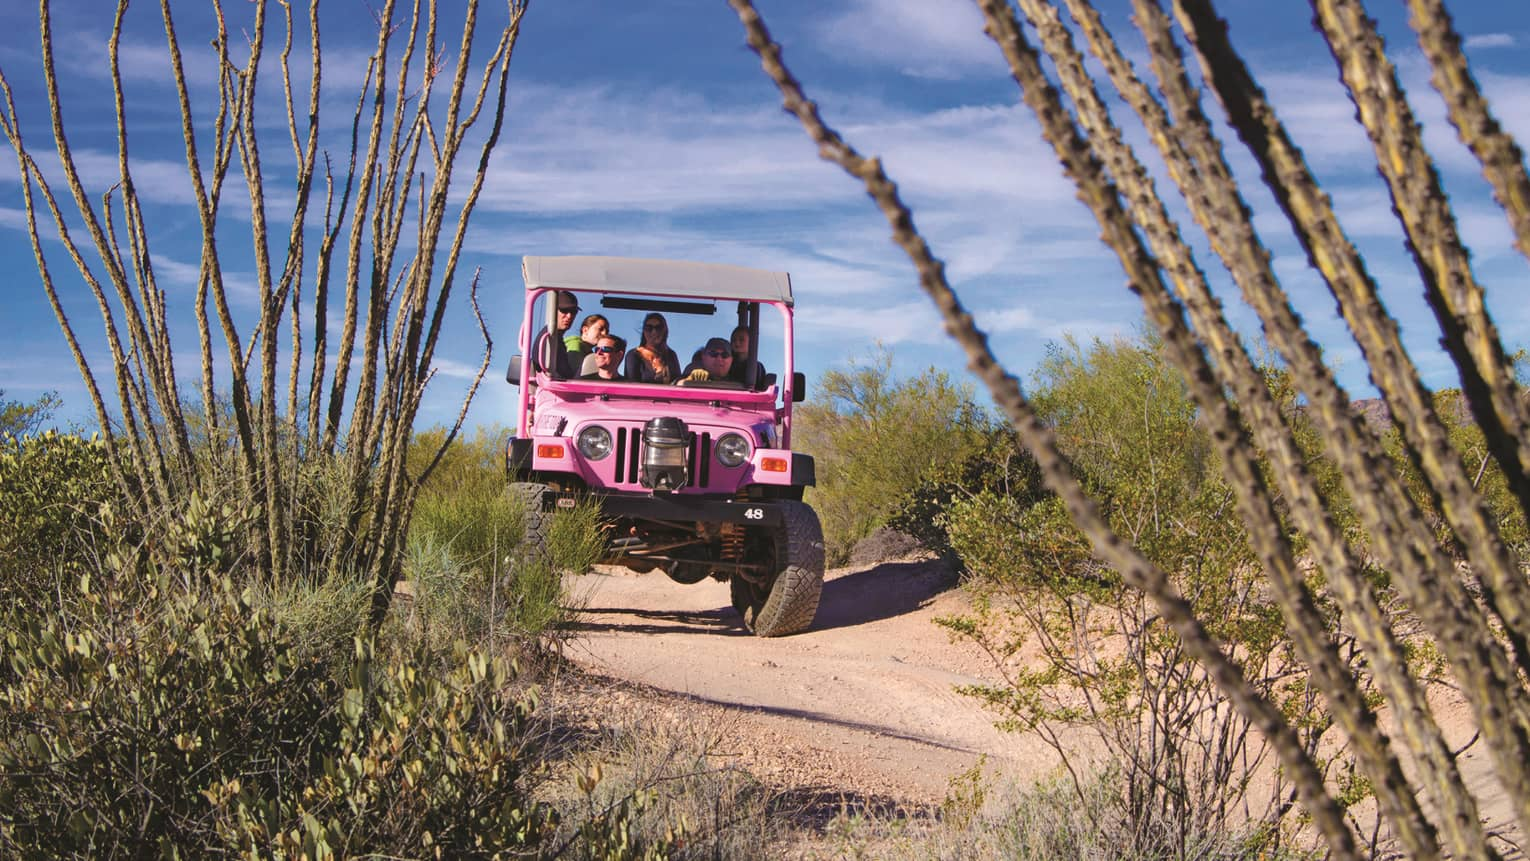 Pink Jeep with tourists drives down desert road past shrubs, cacti